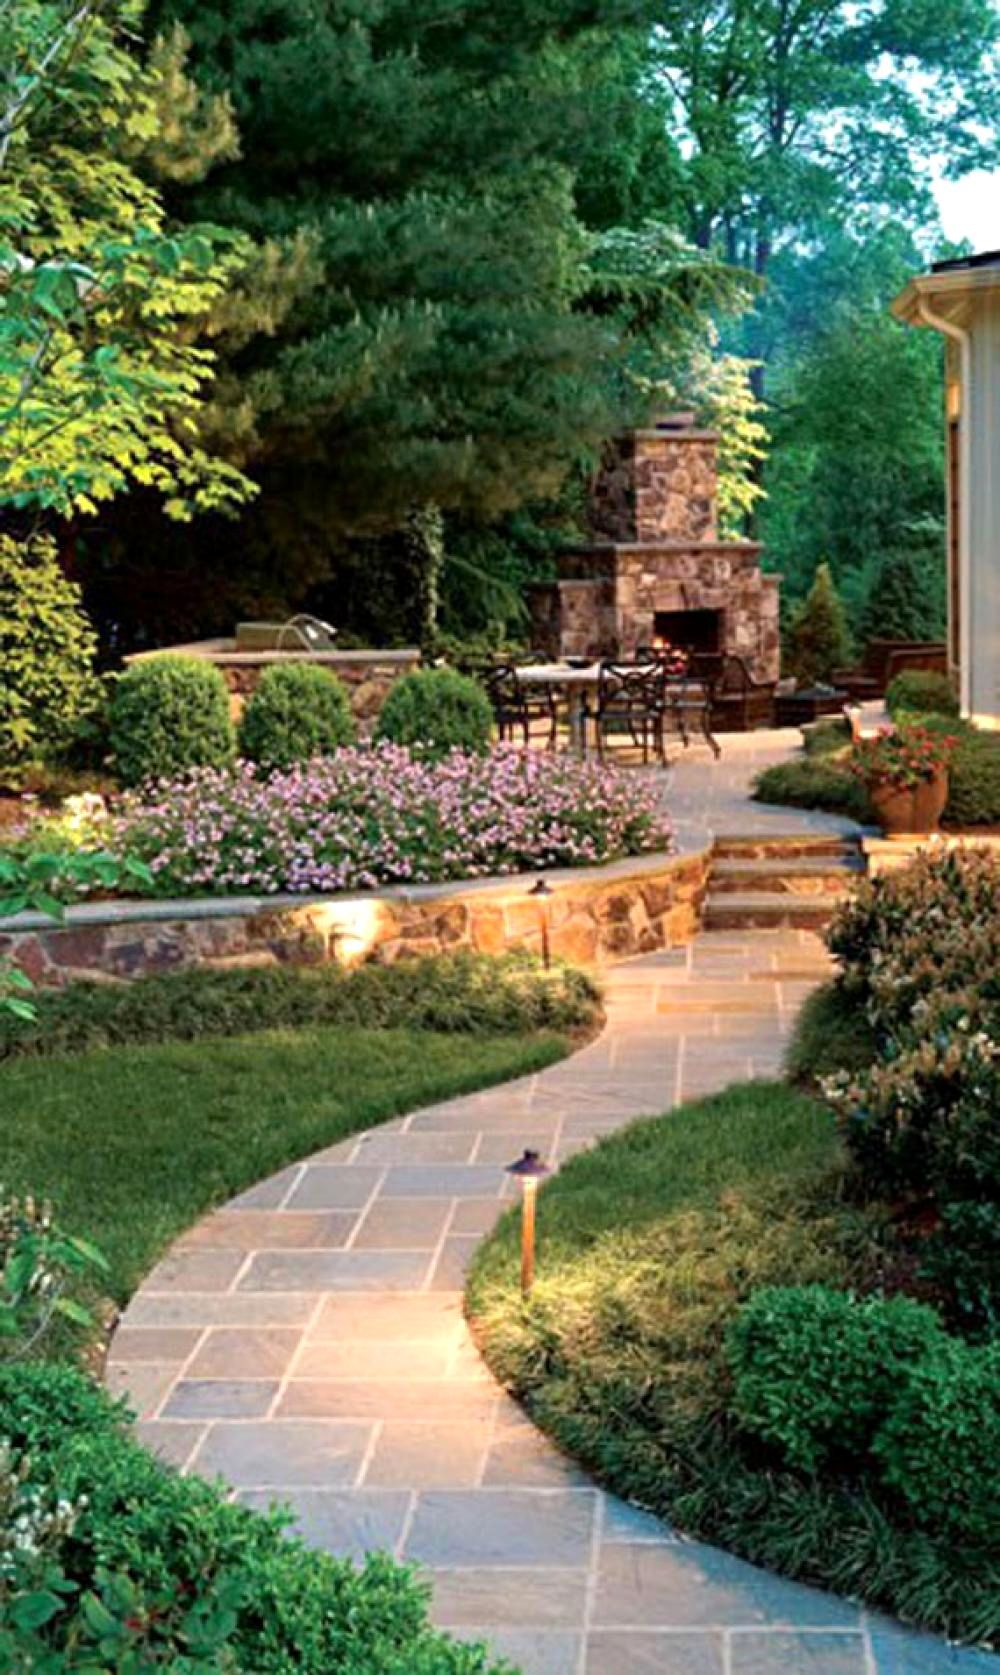 Modern Low Maintenance Garden Ideas Romantic Garden Design ... on Romantic Backyard Ideas id=97516